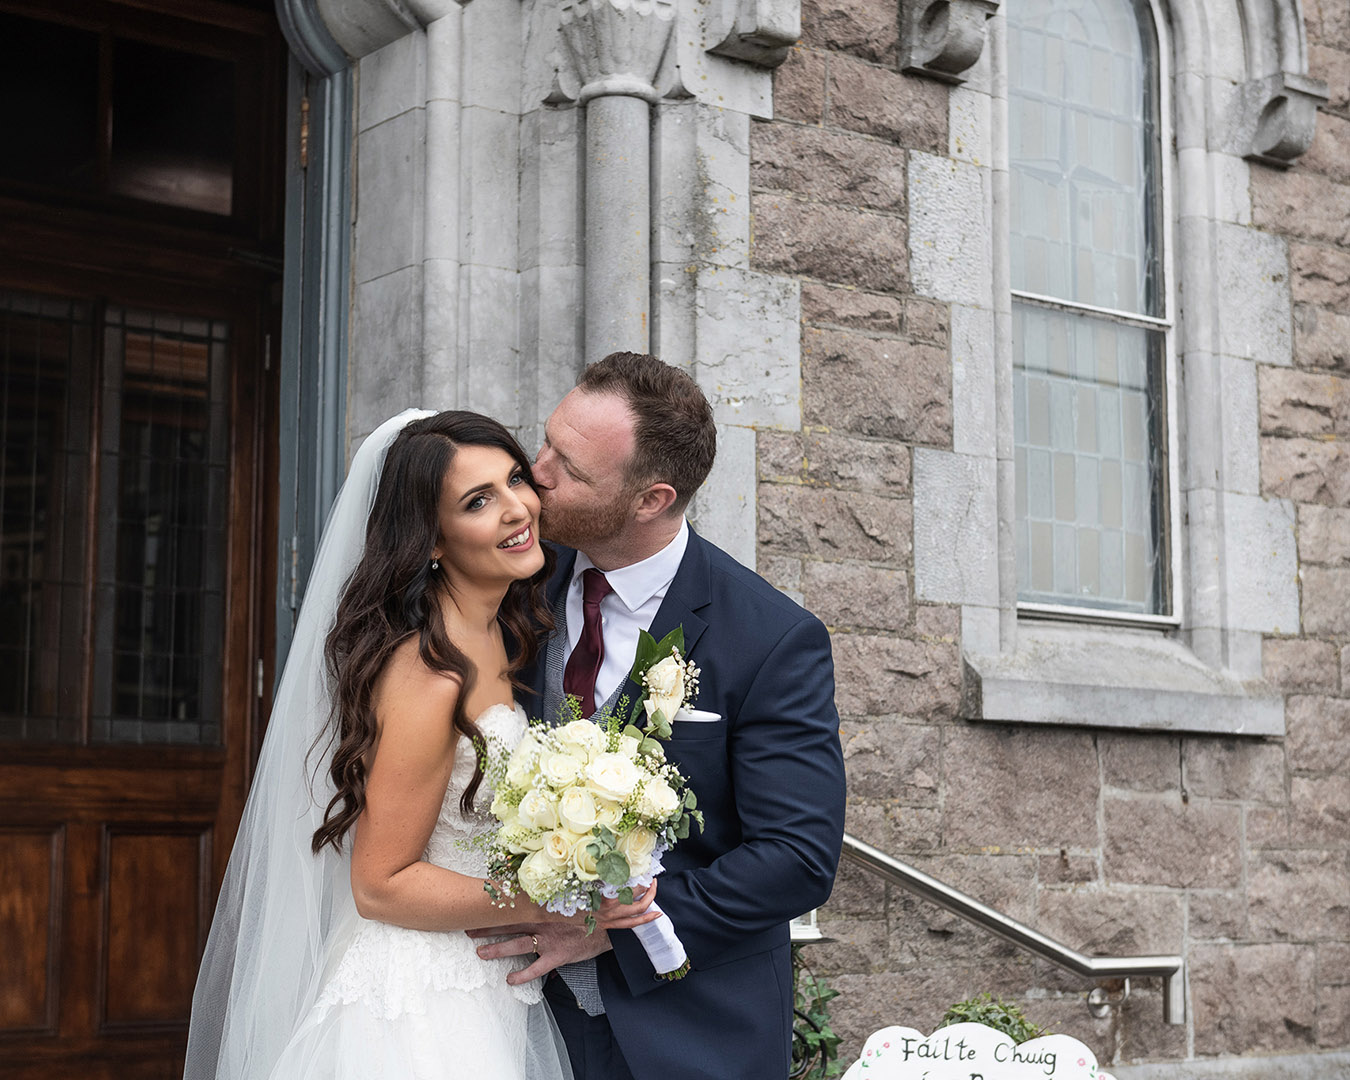 Married at the Claddagh church in Galway, planning your stress free day and taking photos at the Claddagh in Galway